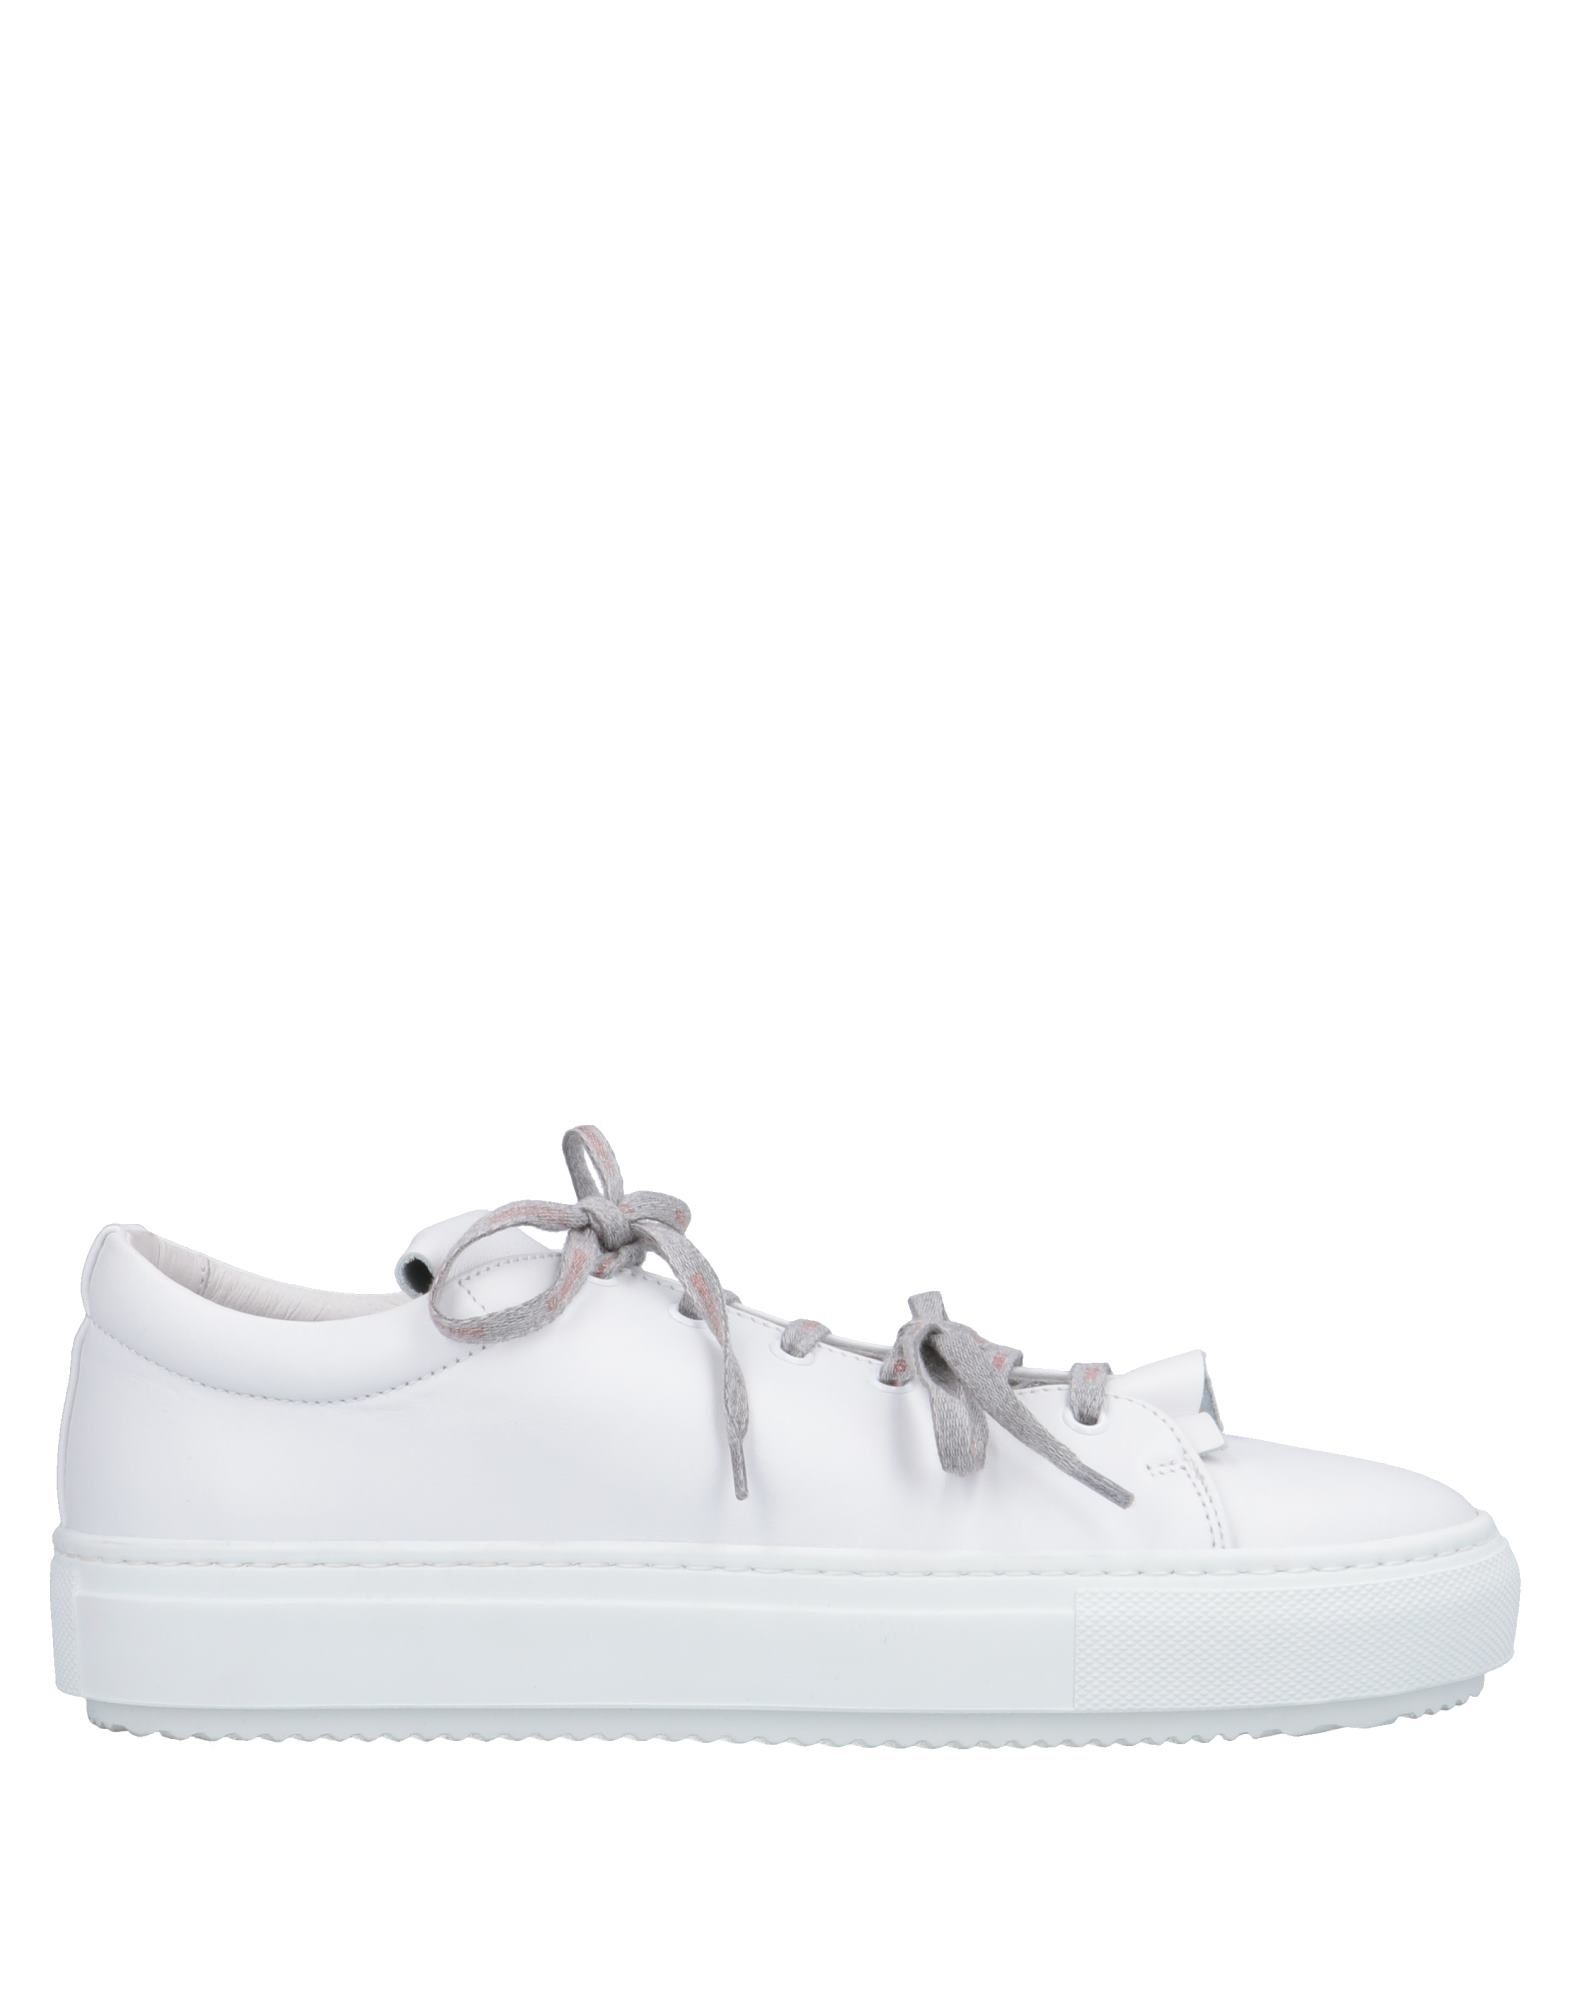 Semicouture on Sneakers - Women Semicouture Sneakers online on Semicouture  Australia - 11567259EF 35d208